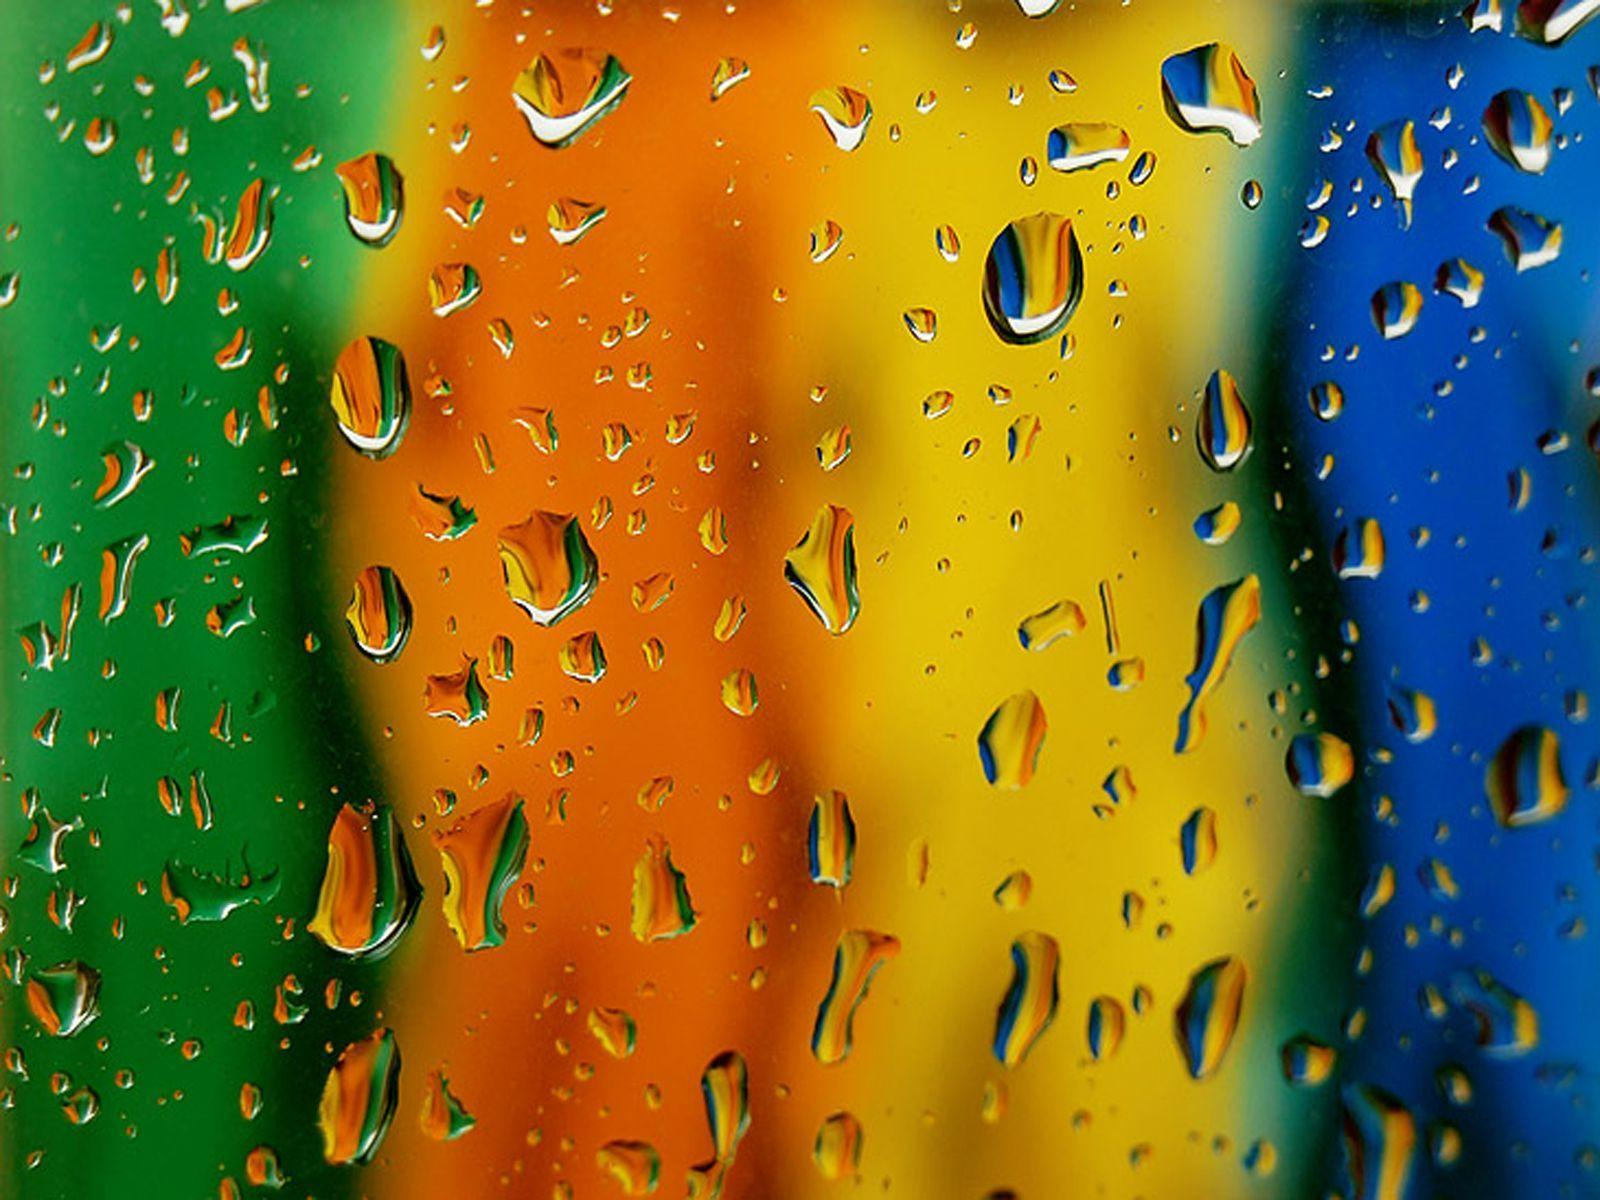 Colorful Drops Wallpapers 3D Abstract For Mobile